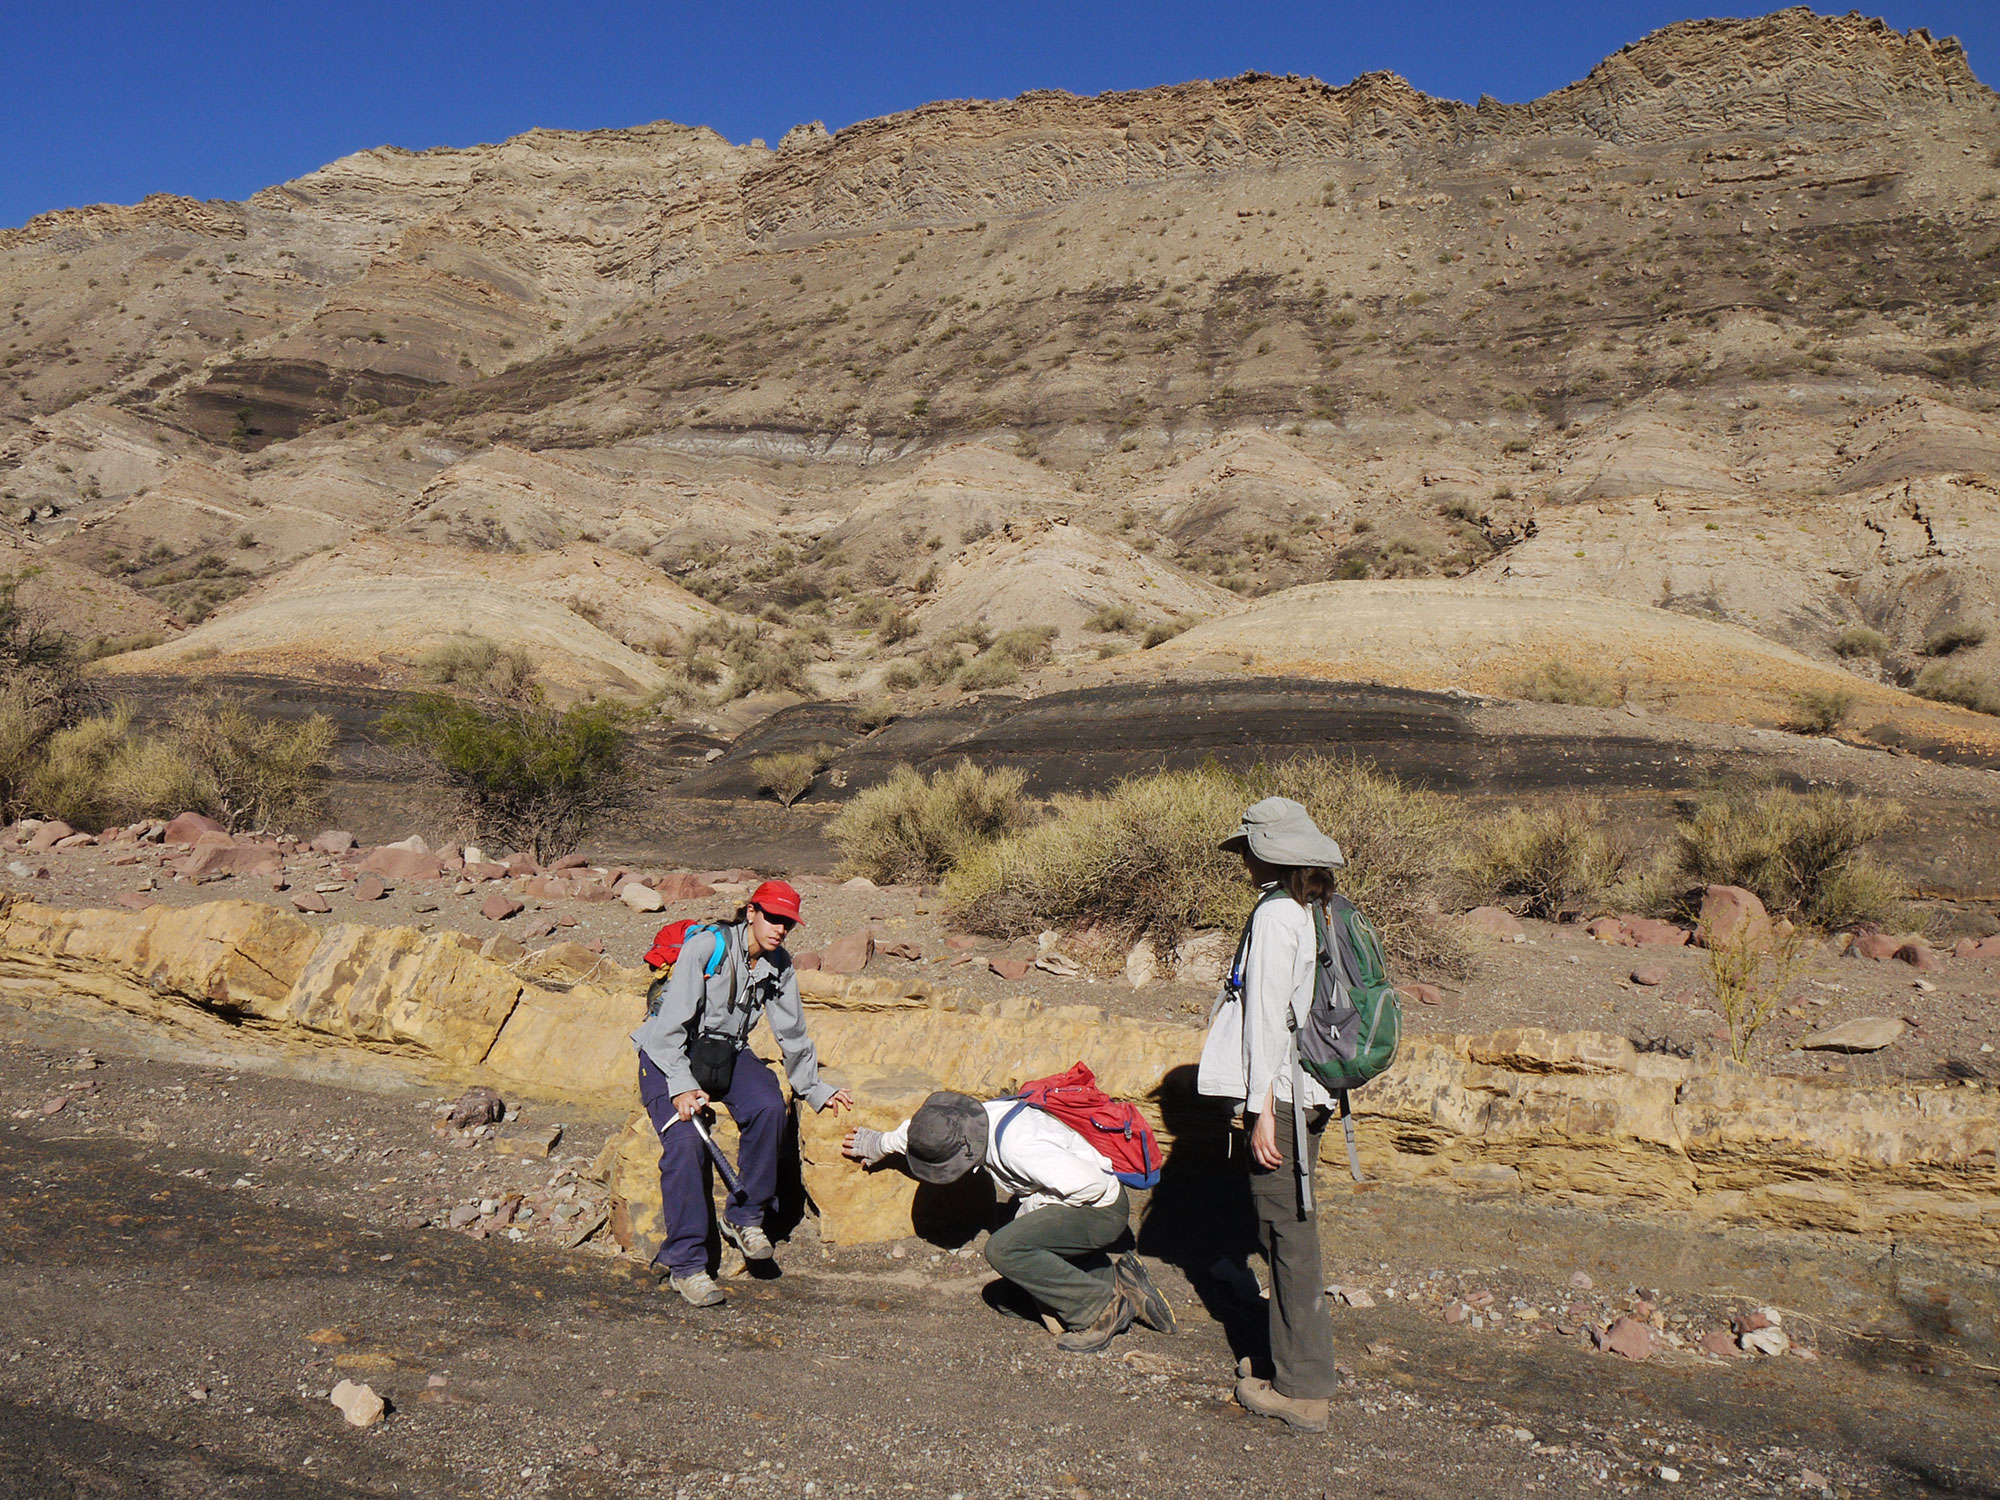 Three geologists crouch around a dinosaur footprint in a dry, arid landscape. A wall of brown and gold stands in the background, with sand dunes cascading towards the geologists. Dried silvery sagebrush dots the landscape.